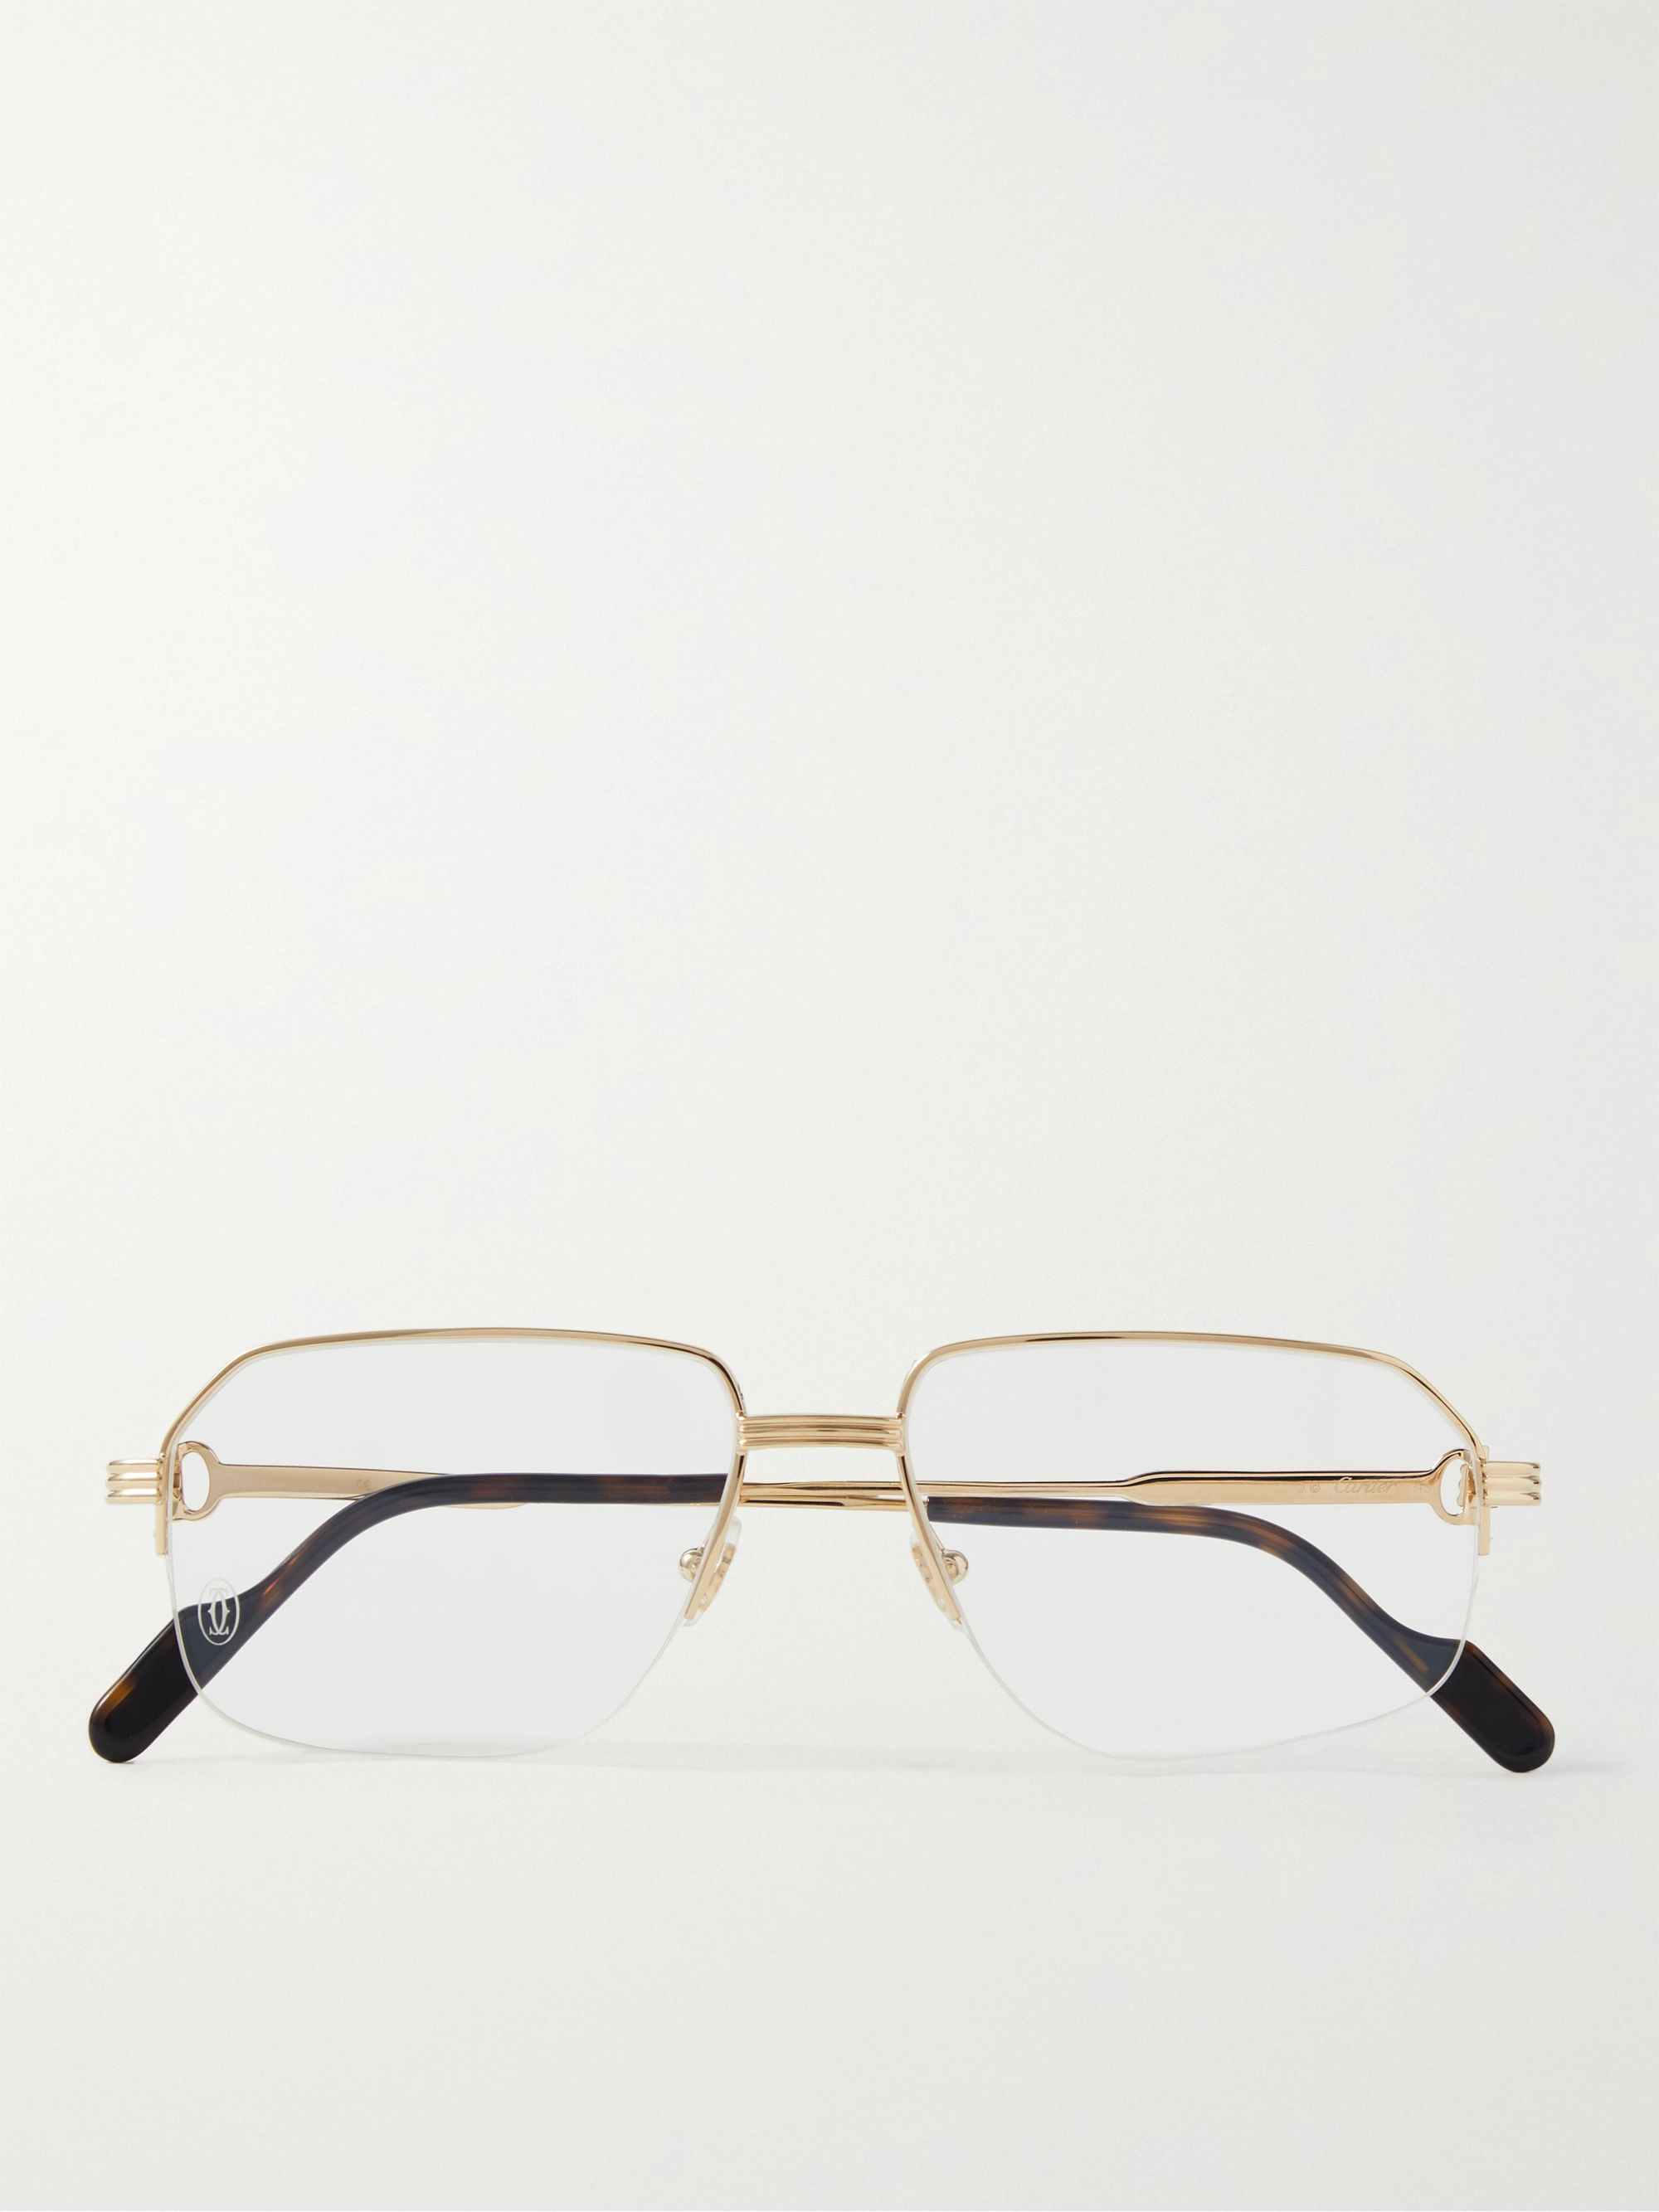 CARTIER EYEWEAR Rectangular-Frame Silver-Tone Optical Glasses